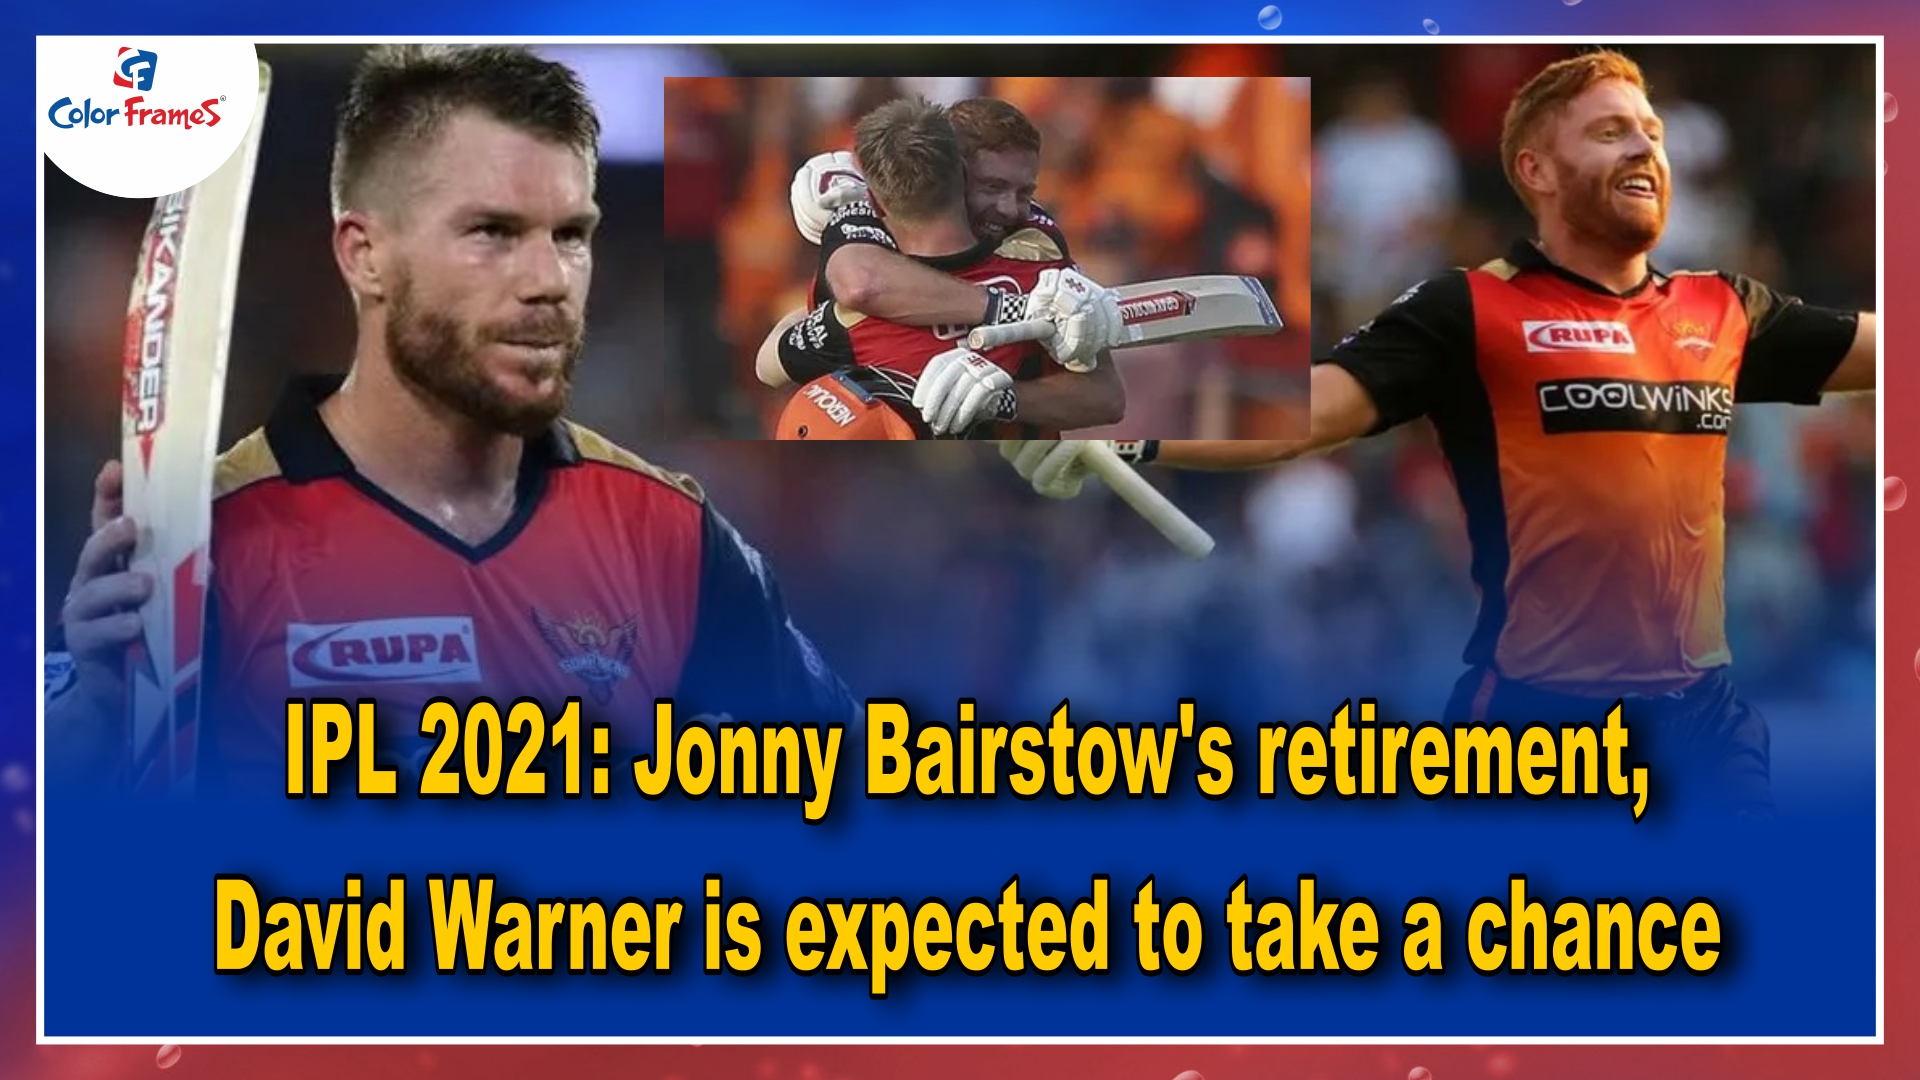 IPL 2021: Jonny Bairstow's retirement, David Warner is expected to take a chance